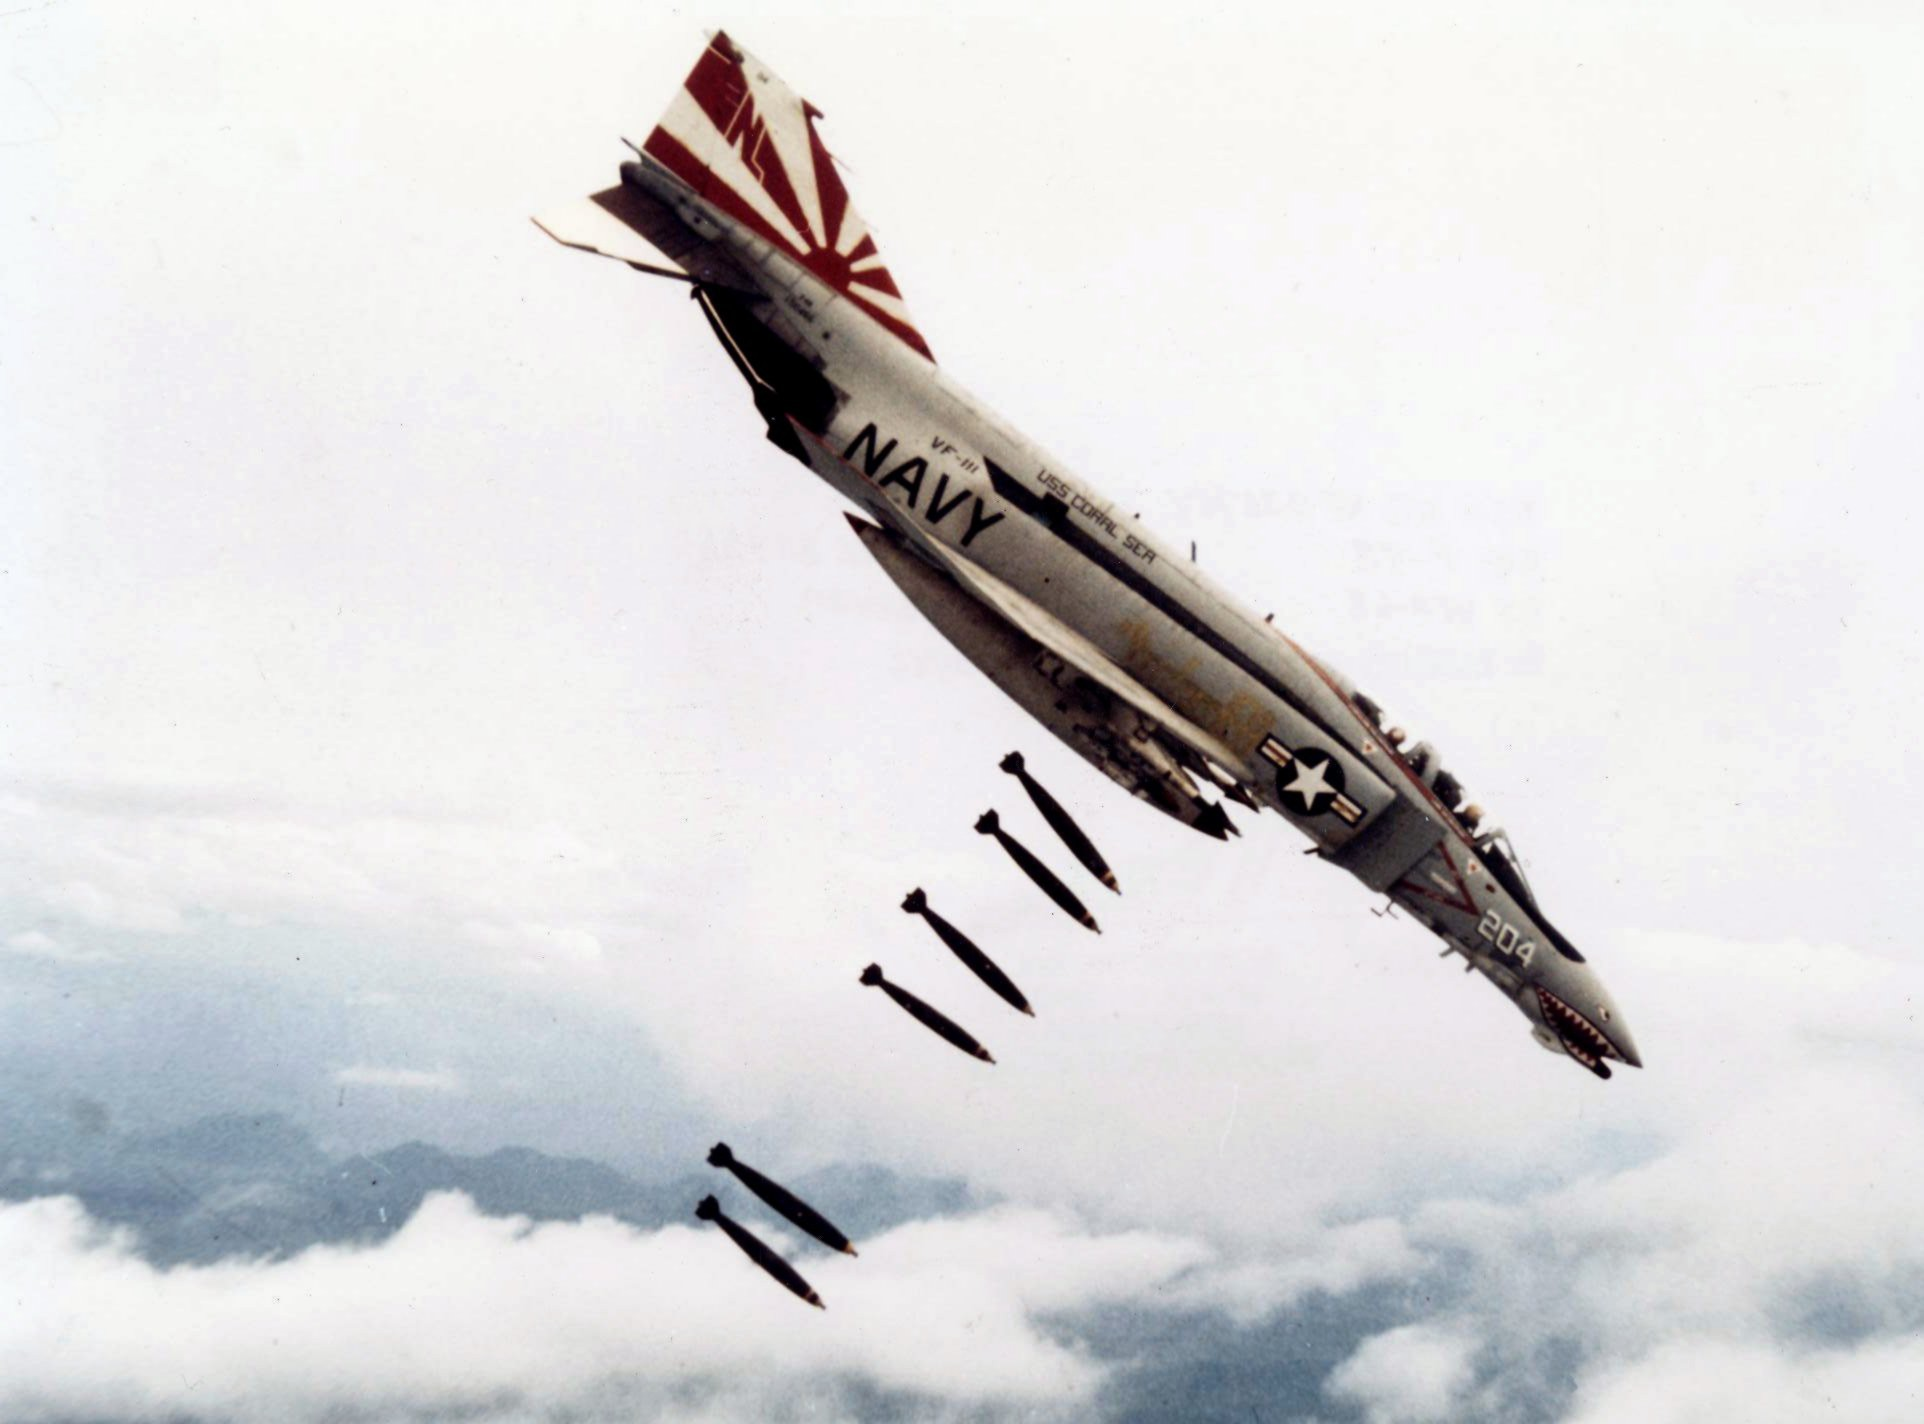 US Navy F-4B dropping bombs over Vietnam in 1971 (Photo Credit: US Navy National Museum of Naval Aviation)